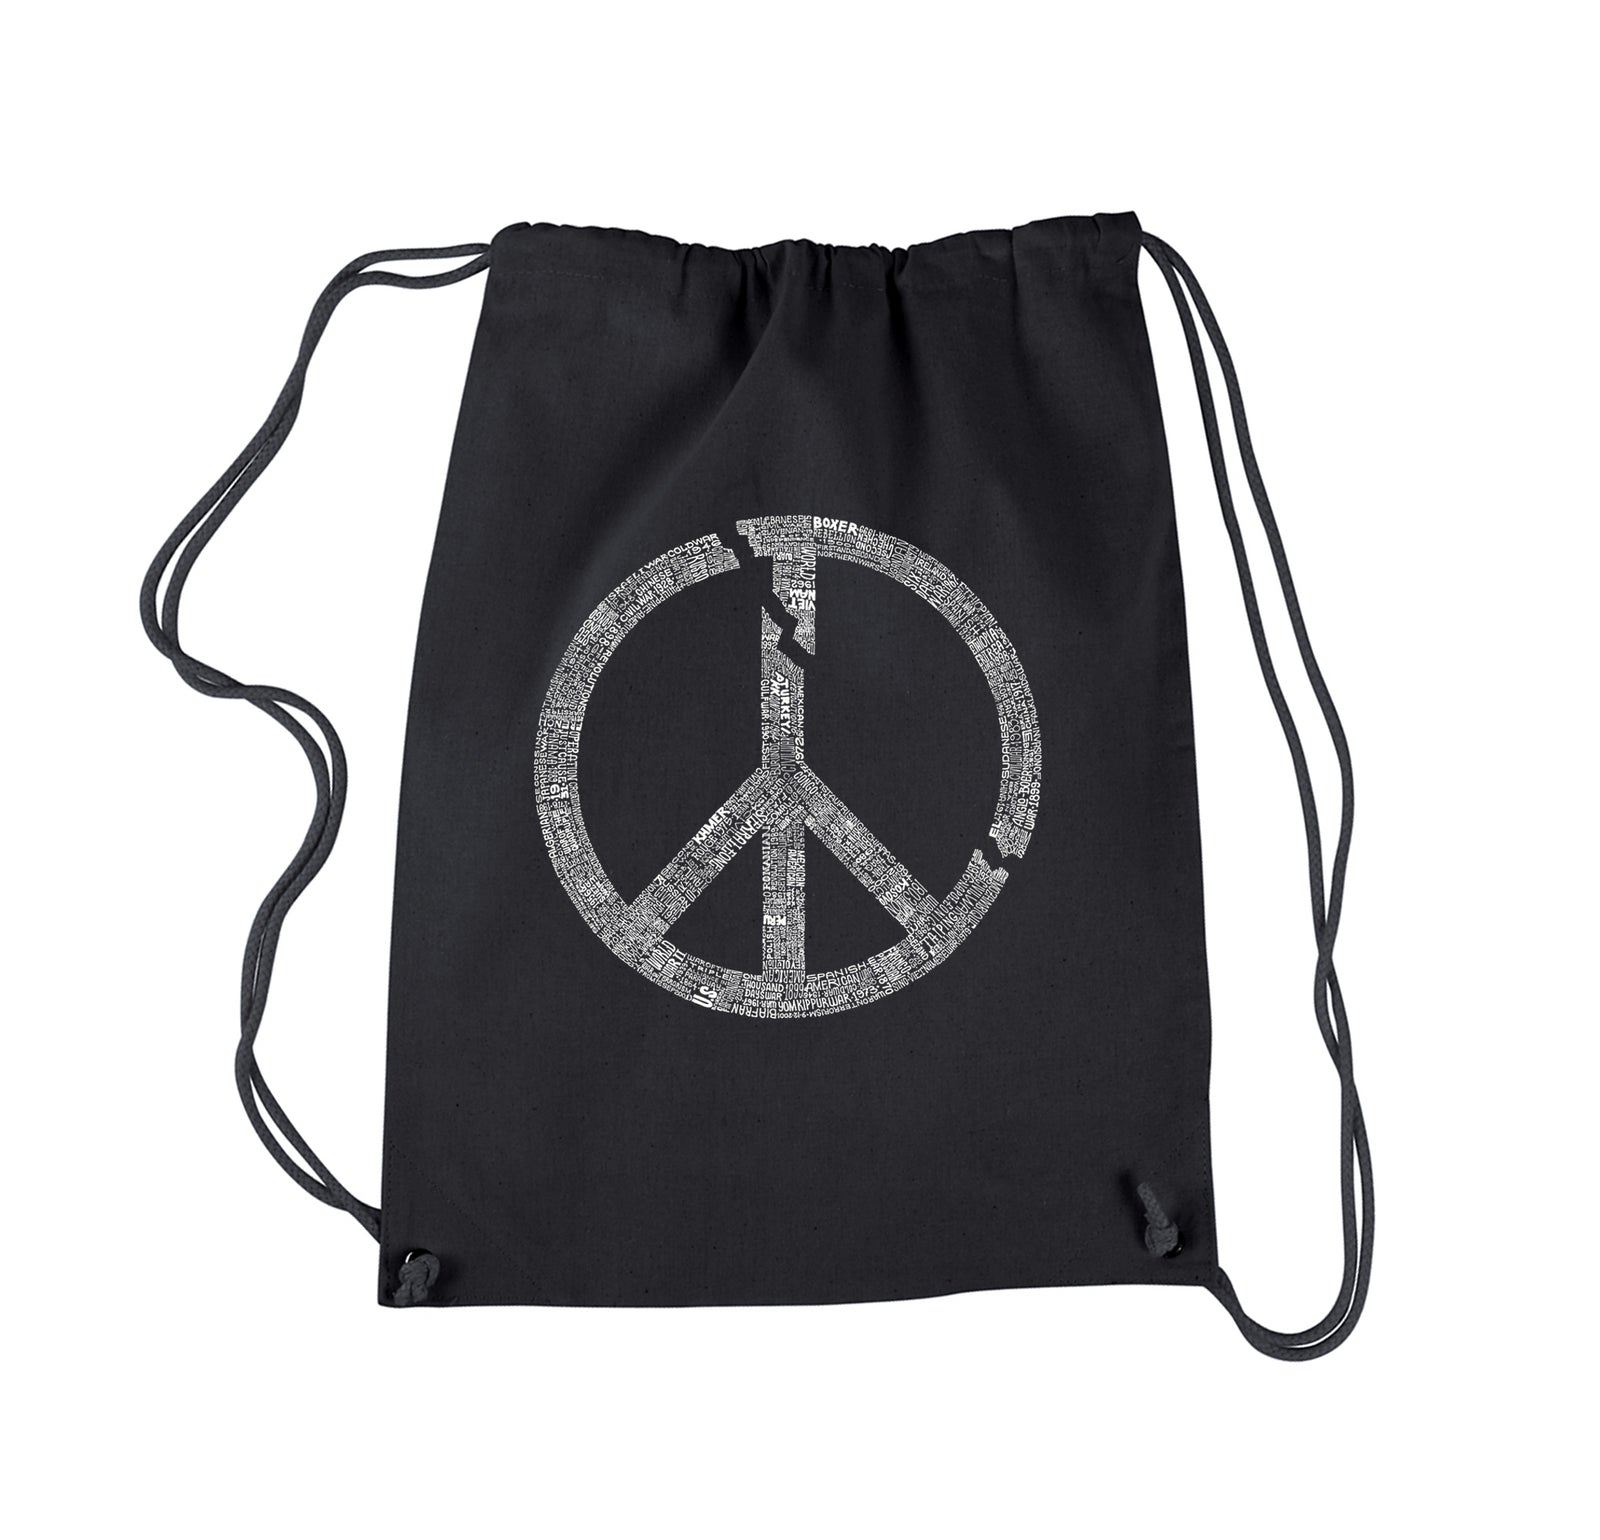 Drawstring Backpack - EVERY MAJOR WORLD CONFLICT SINCE 1770